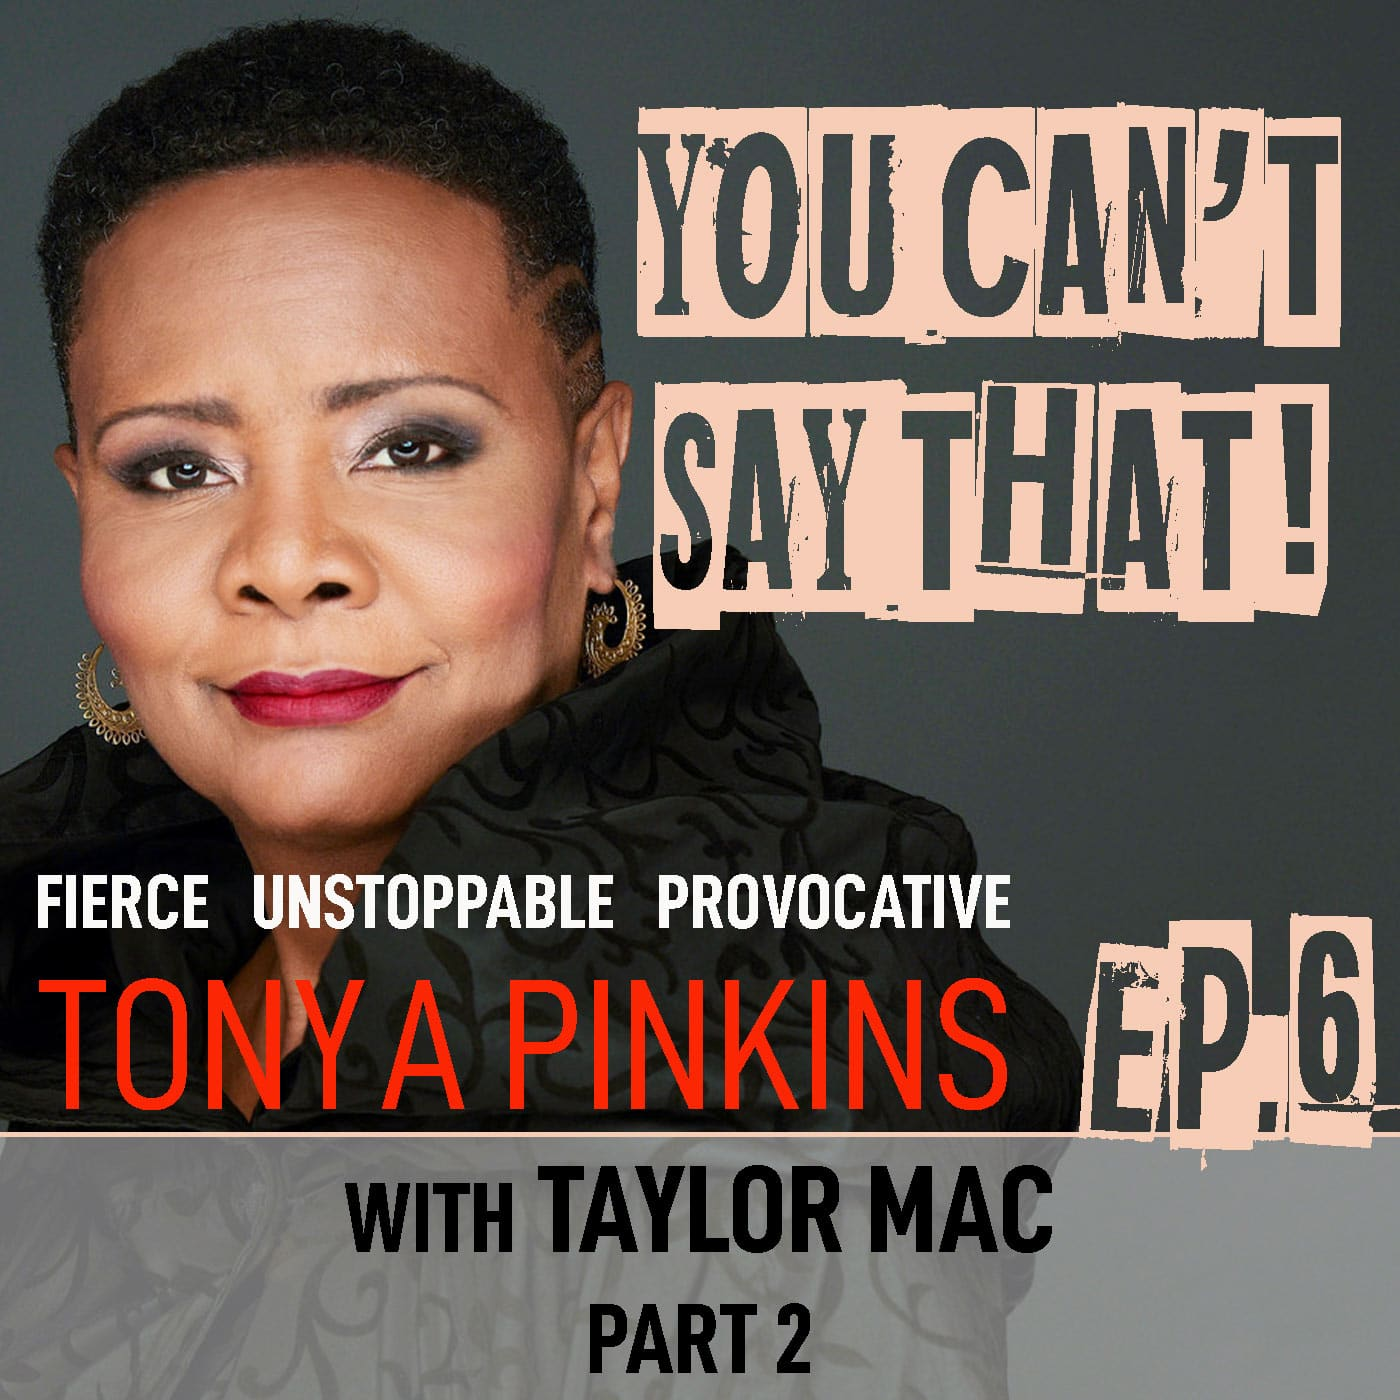 Tonya Pinkins hosts You Can't Say That Episode 6 - Taylor Mac, Pulitzer Prize Finalist (Part 2)